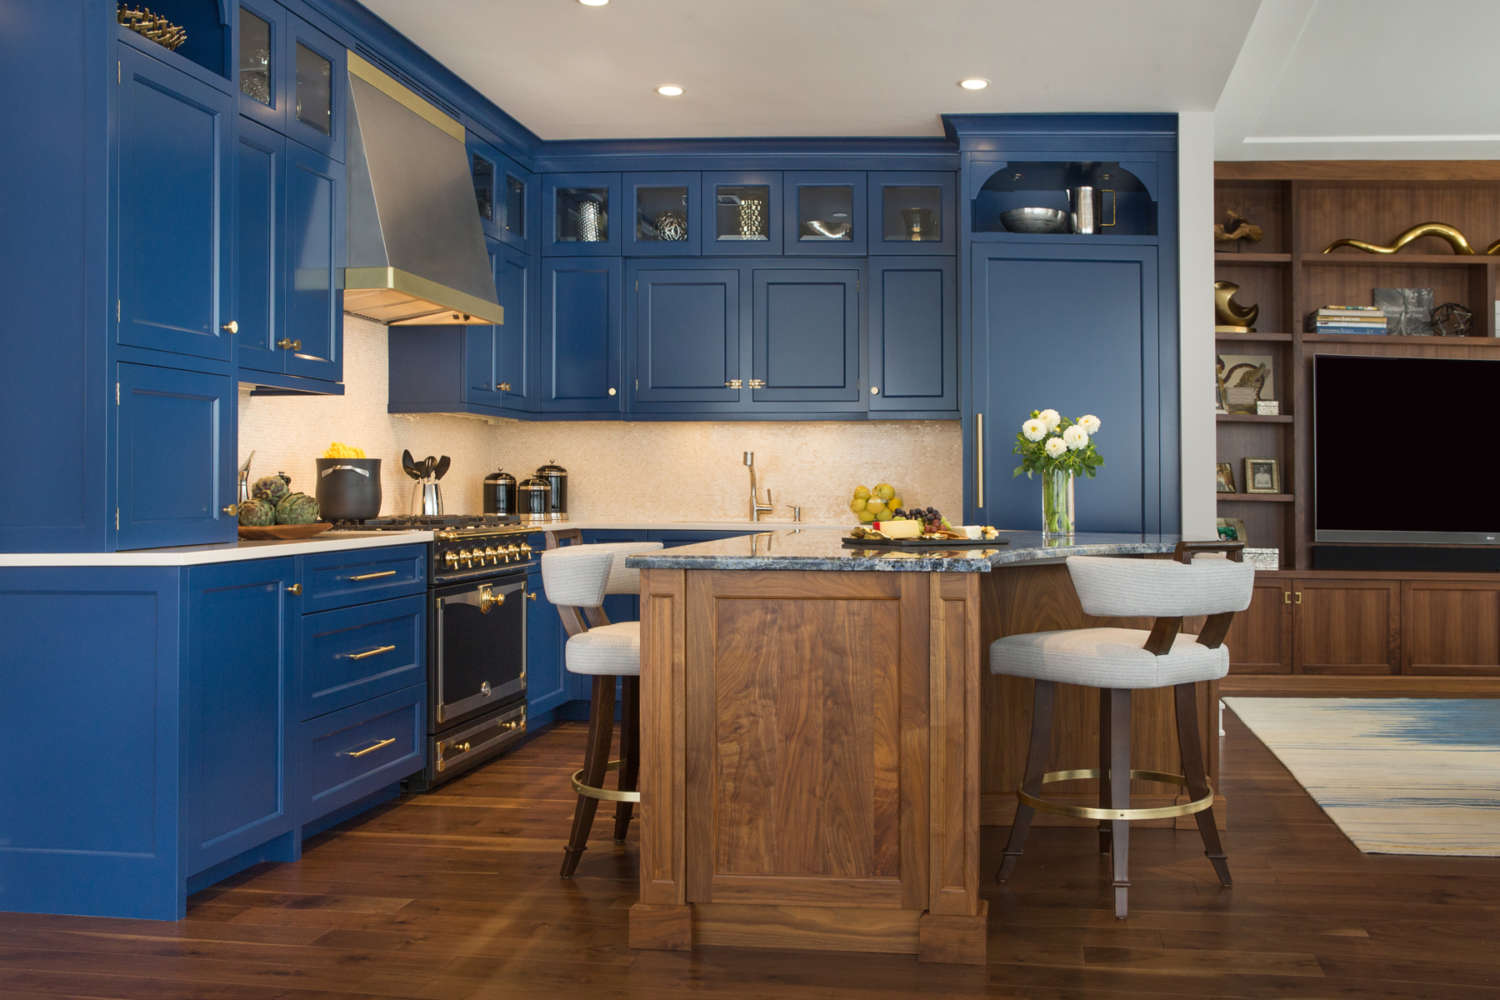 L-shaped kitchen with blue painted custom kitchen cabinets with shaker style doors. Walnut island with seating. Bilotta custom cabinets and shelving in walnut with mid-century modern vibe in adjacent living room area. Designed by Jeni Spaeth of Bilotta Kitchens.